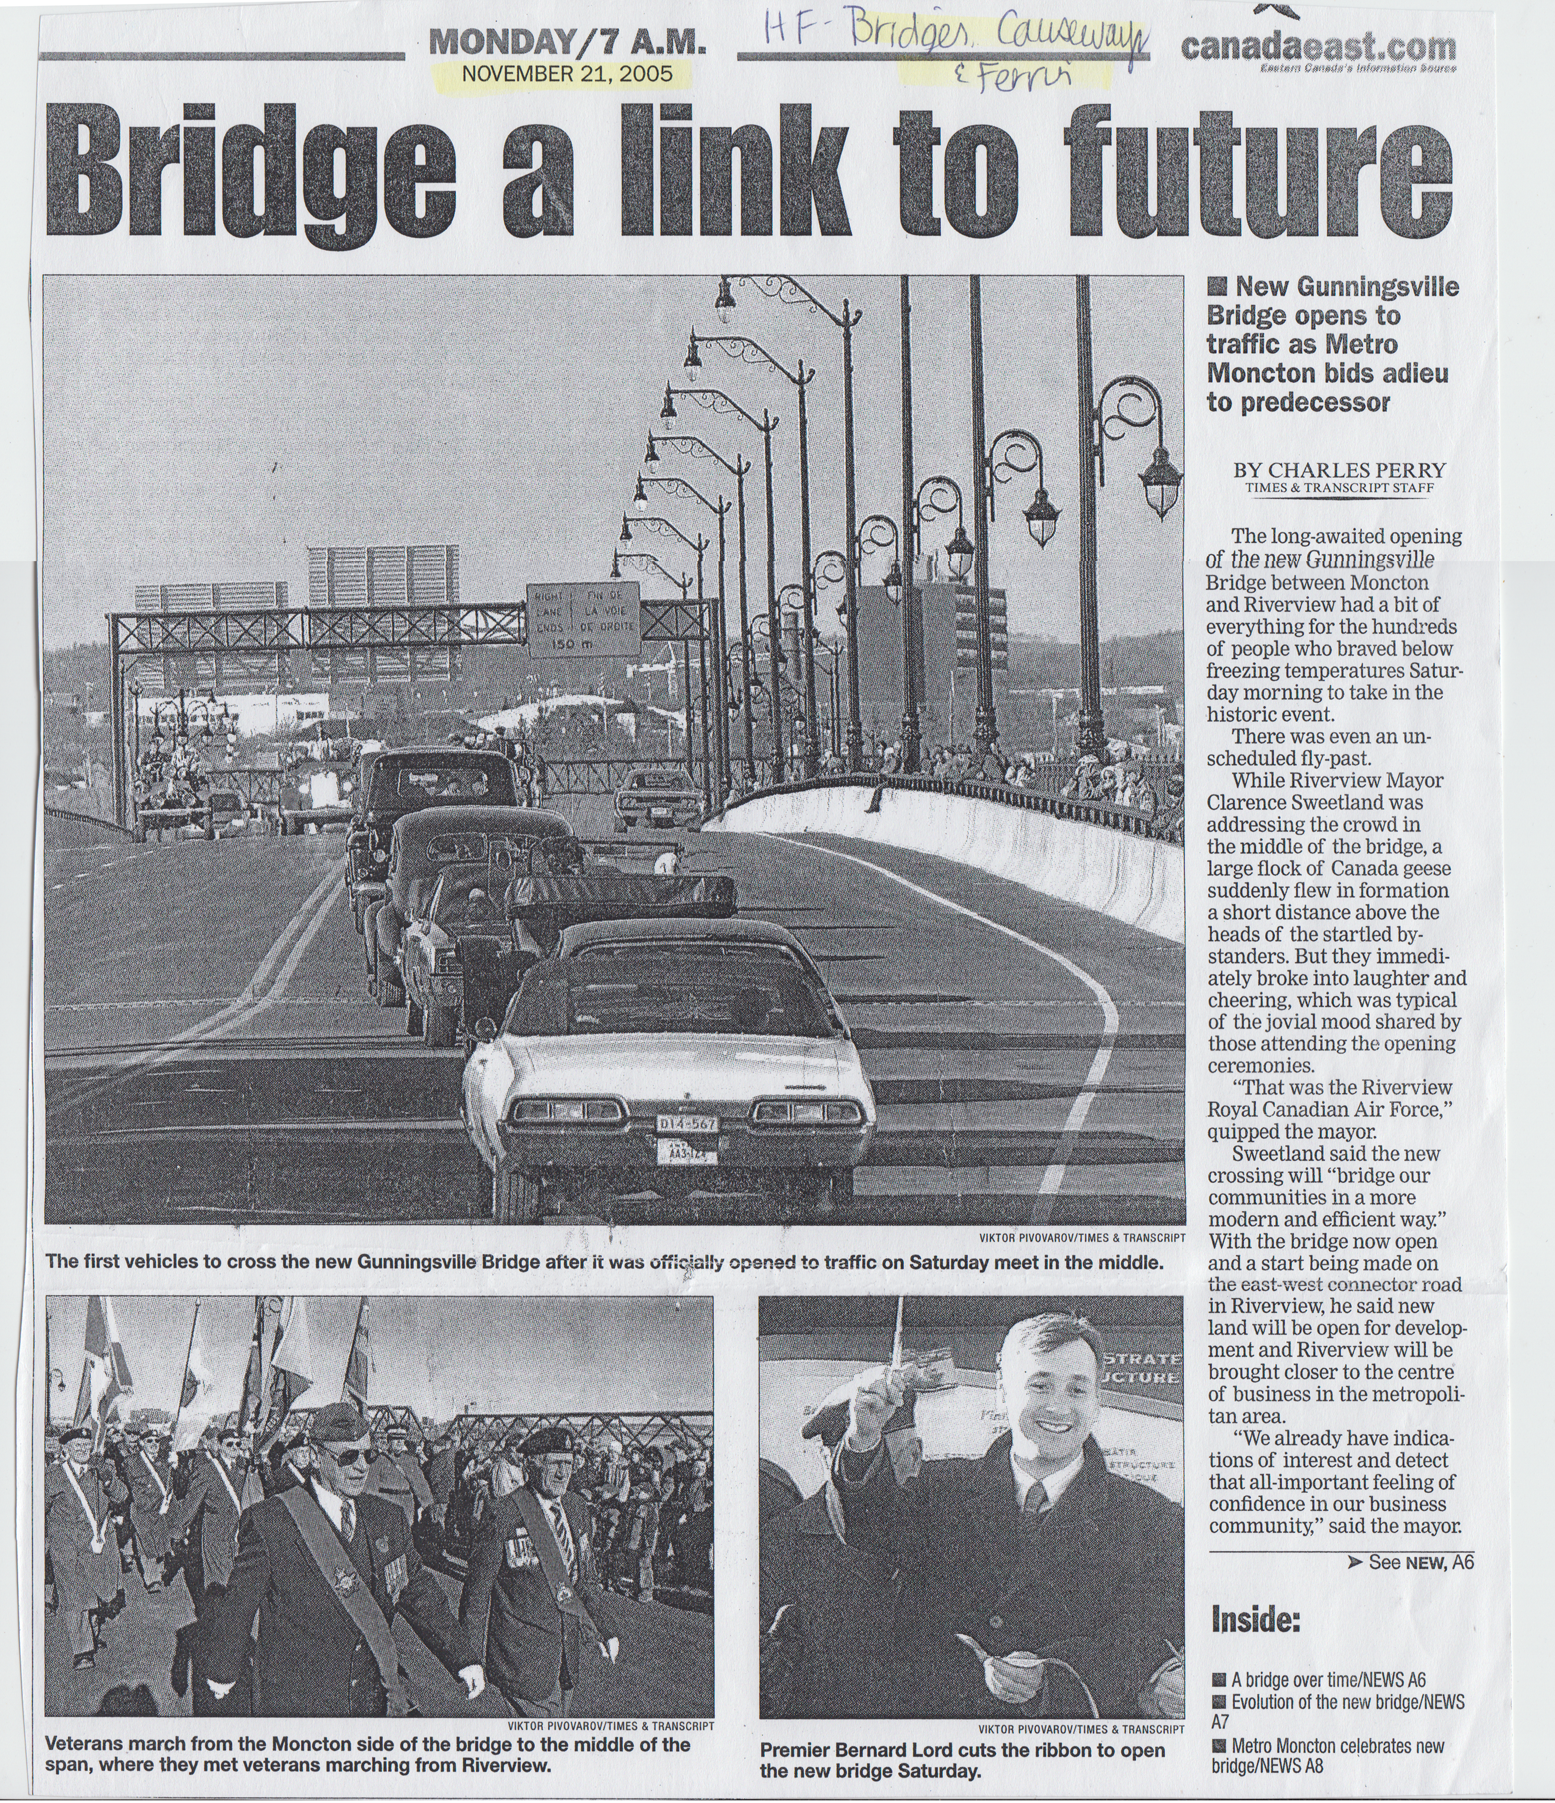 2005Nov BridgeALinkToFuture